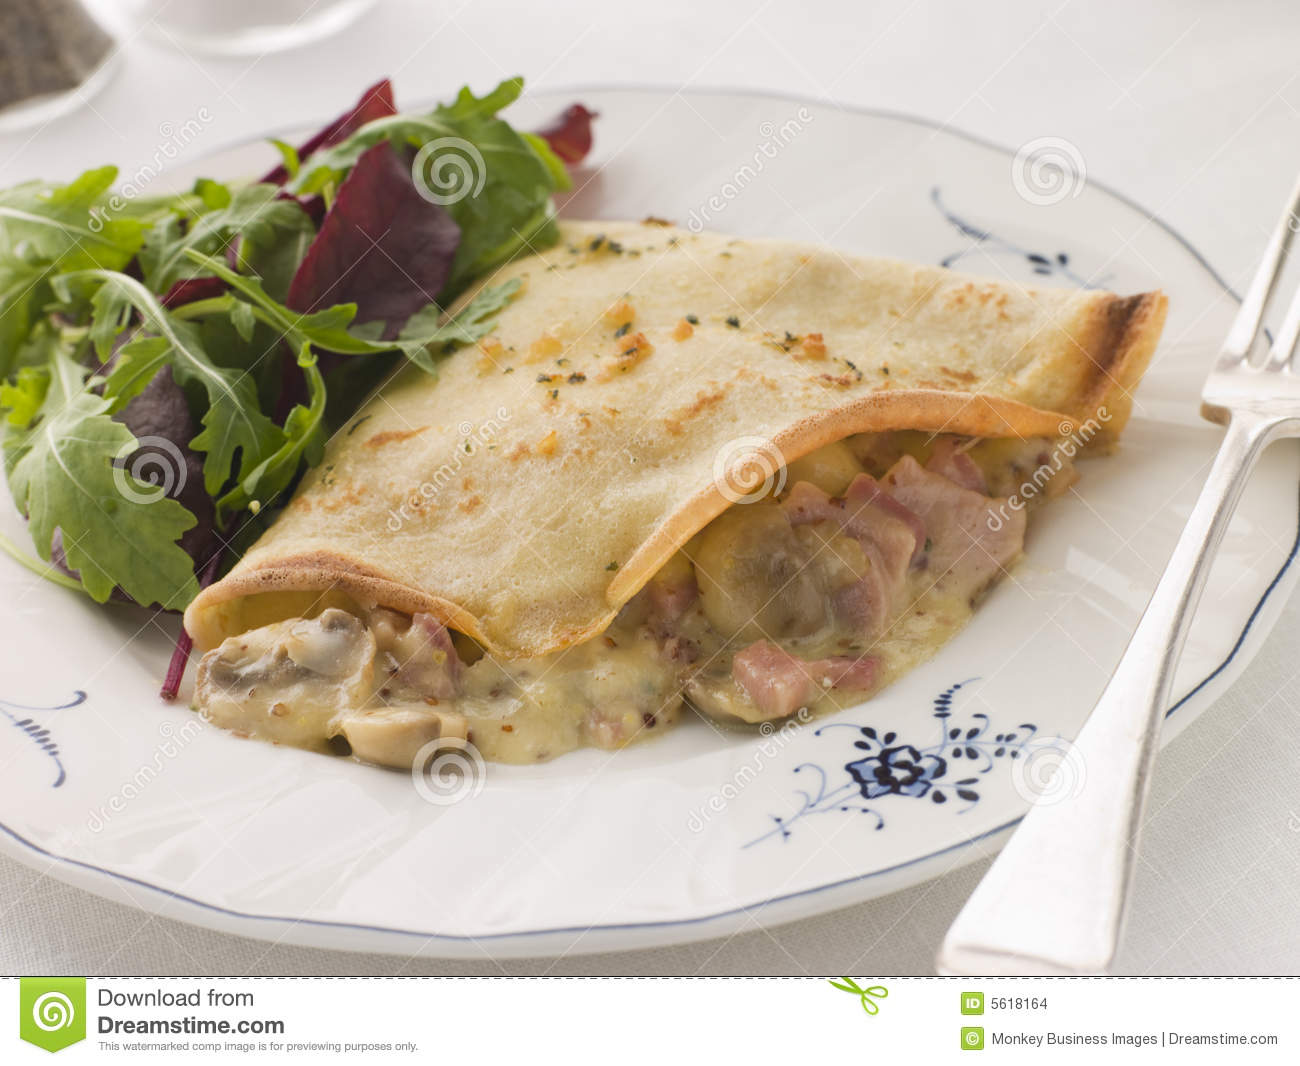 ... Pancake filled with Ham Cheese and Mushrooms with dressed salad